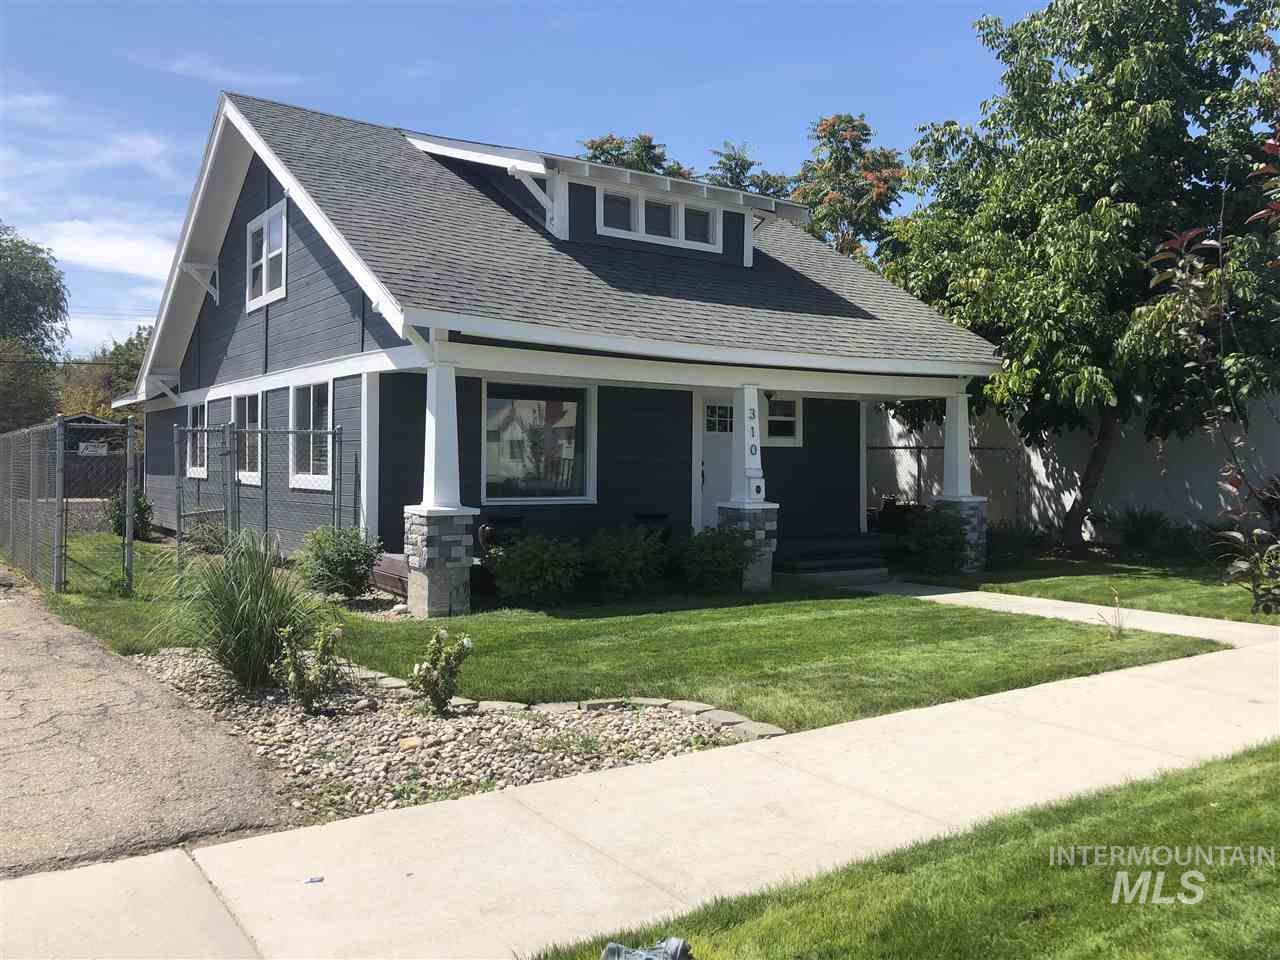 Beautiful, totally renovated, craftsman style home on a main thoroughfare through downtown Caldwell. Zoned commercial but grandfathered in as residential, this home is located in the